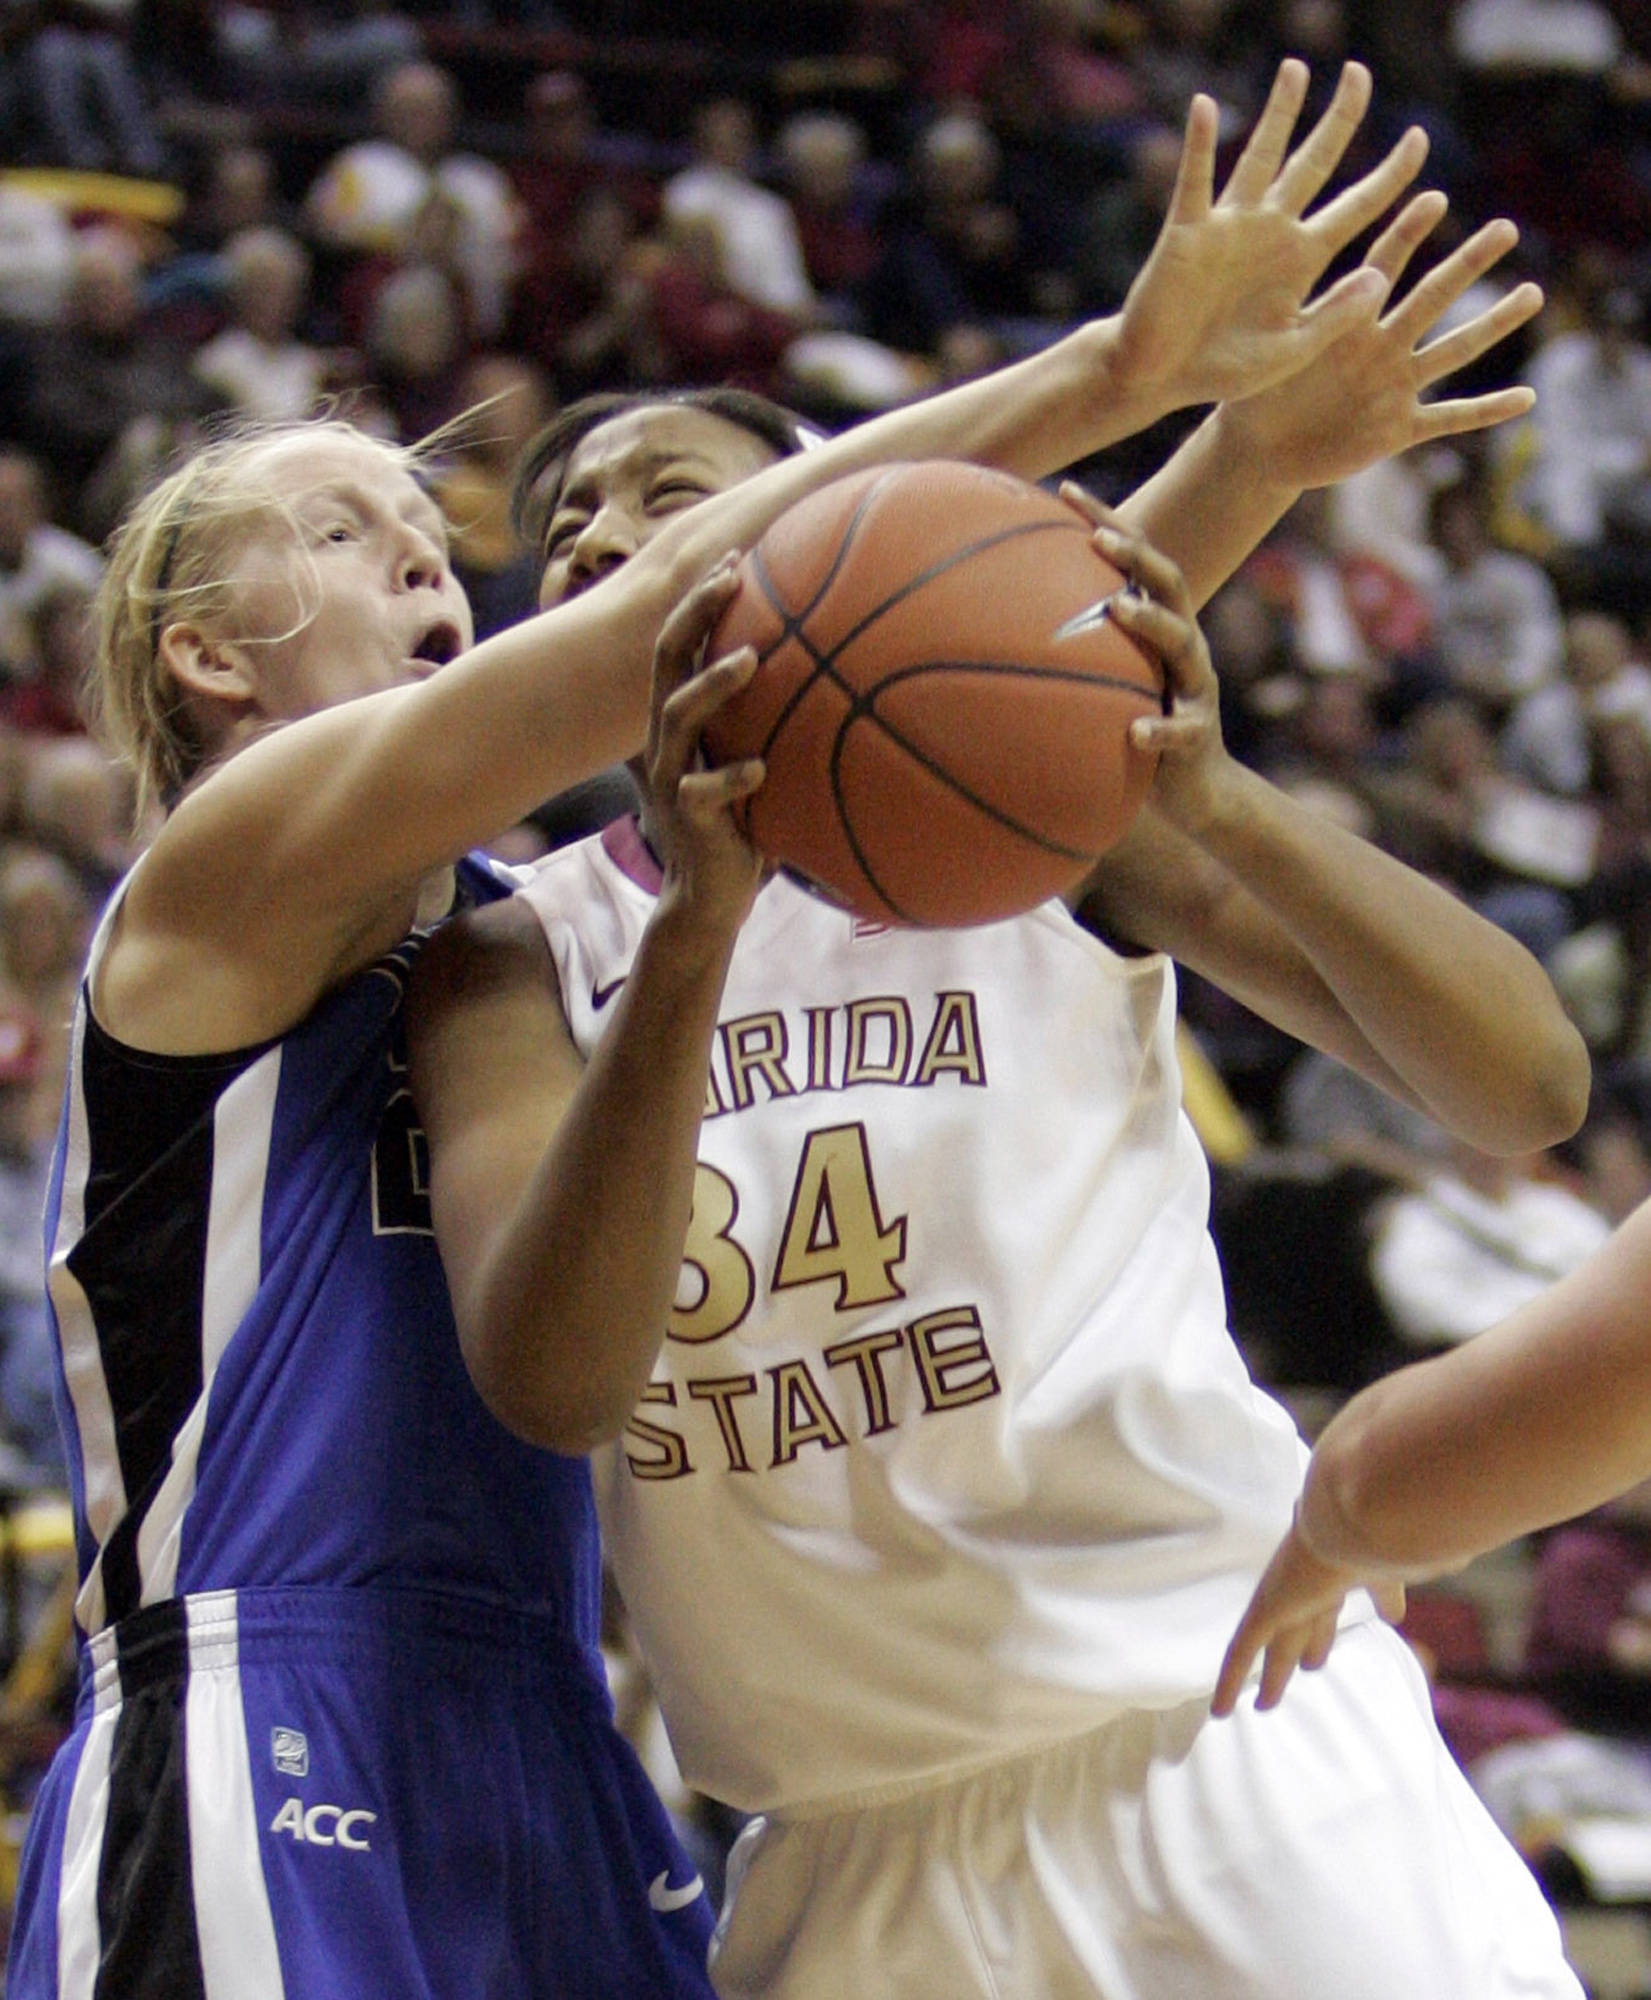 Florida State's Chelsea Davis, right, tries to shoot past the defense of Duke's KIathleen Scheer, left, in the first half of an NCAA college basketball game on Friday, Jan. 14, 2011, in Tallahassee, Fla. (AP Photo/Steve Cannon)